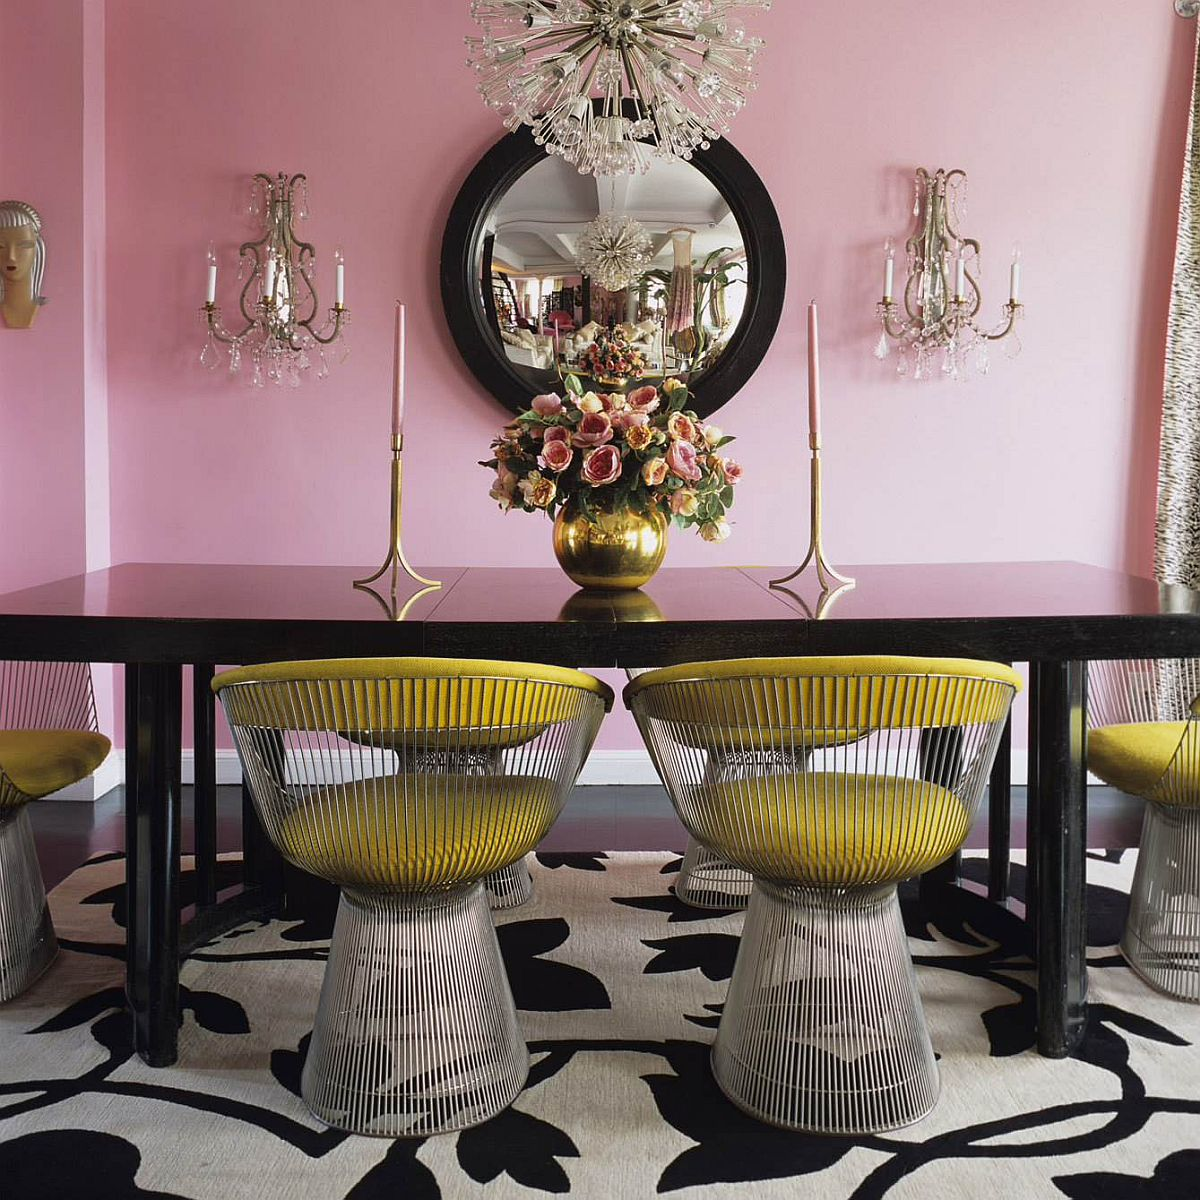 Iconic-Platner-Chairs-bring-contrast-to-the-fab-dining-room-in-pink